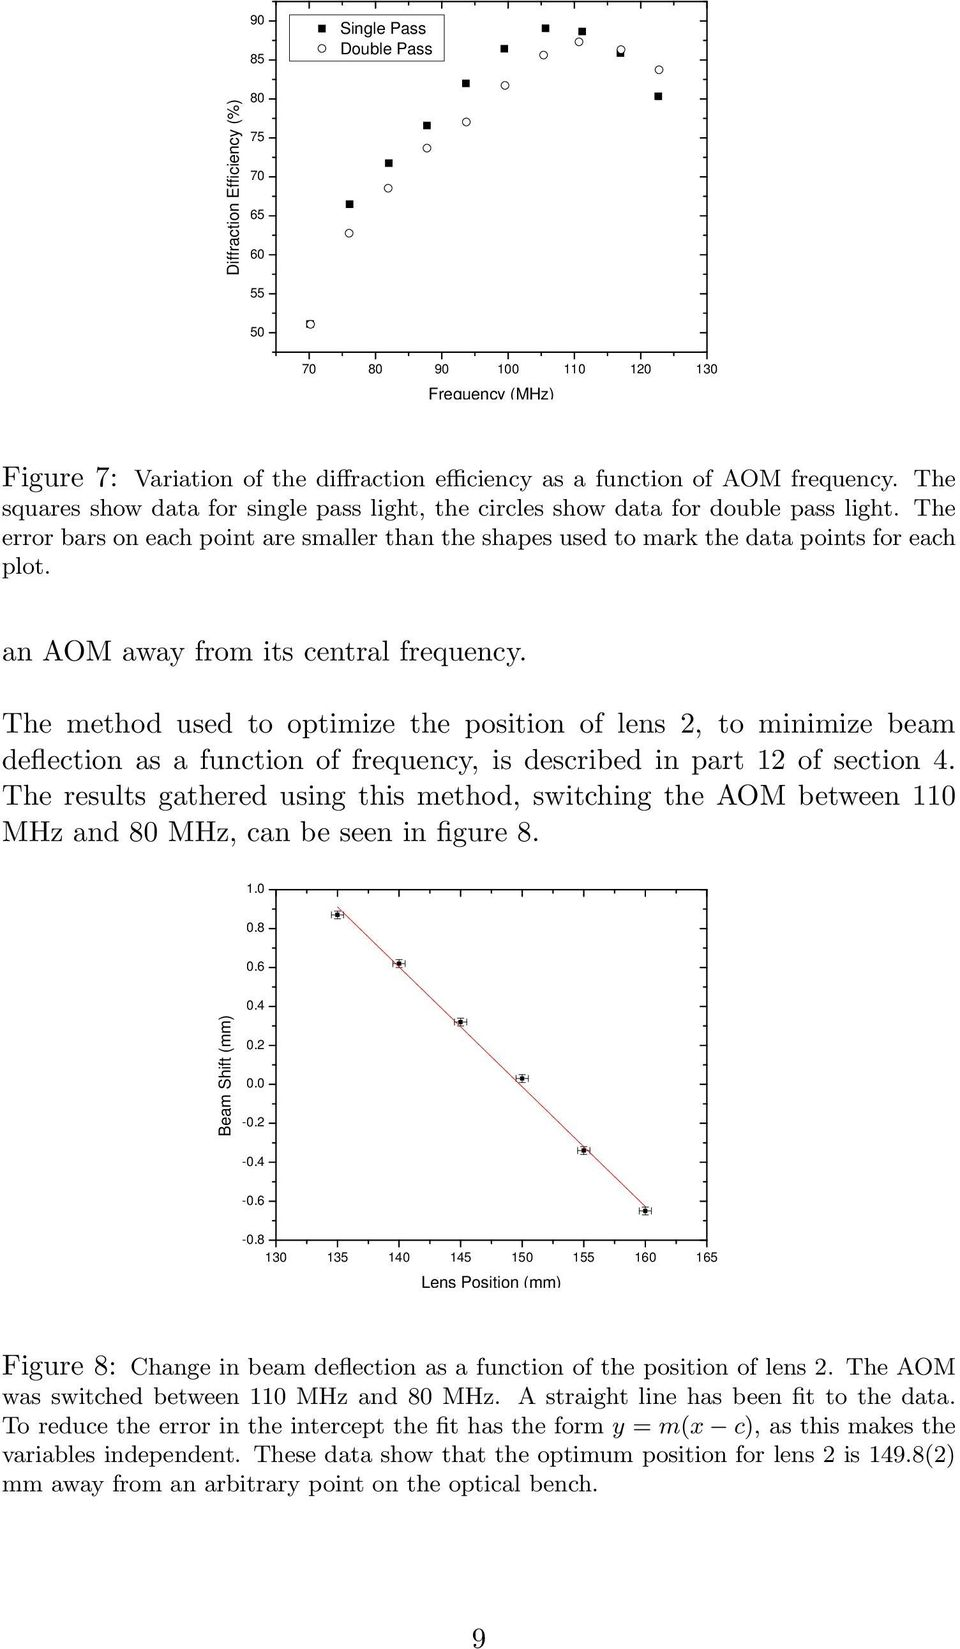 an AOM away from its central frequency. The method used to optimize the position of lens 2, to minimize beam deflection as a function of frequency, is described in part 12 of section 4.